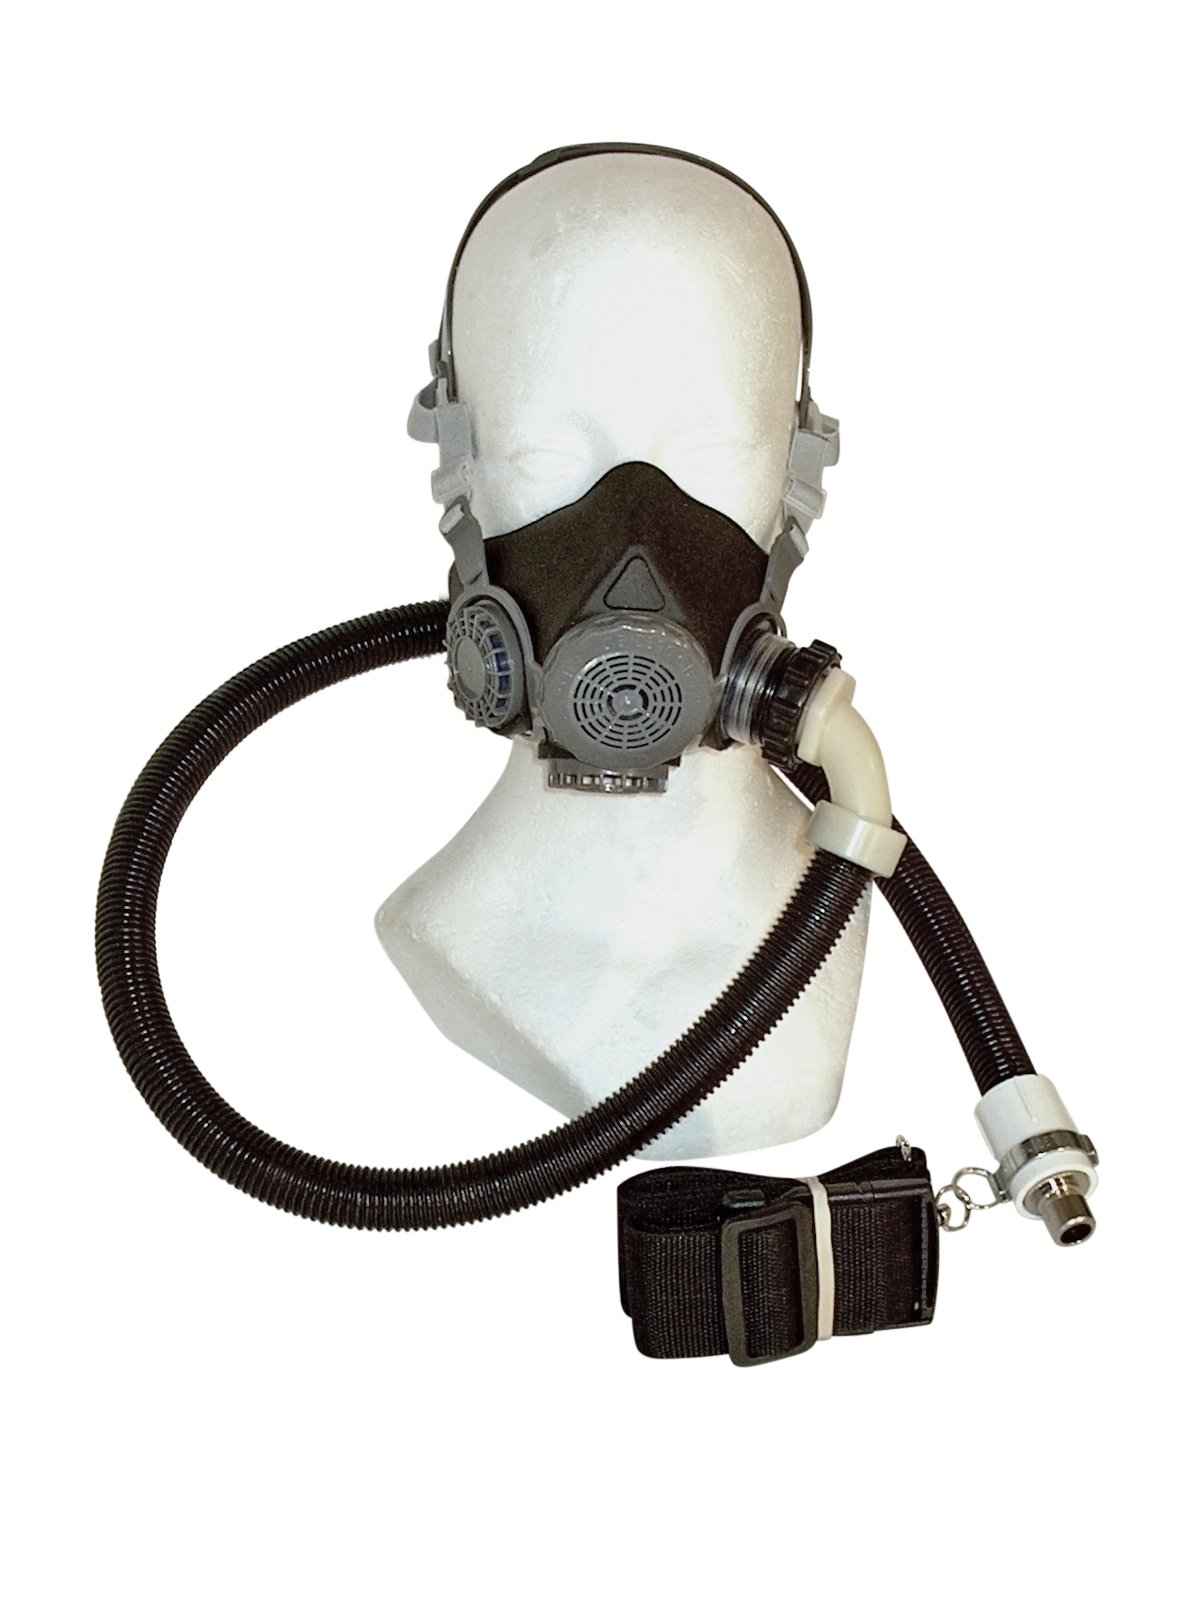 Half mask assembly for Supplied air respirator by Breathe-Cool (Image #1)